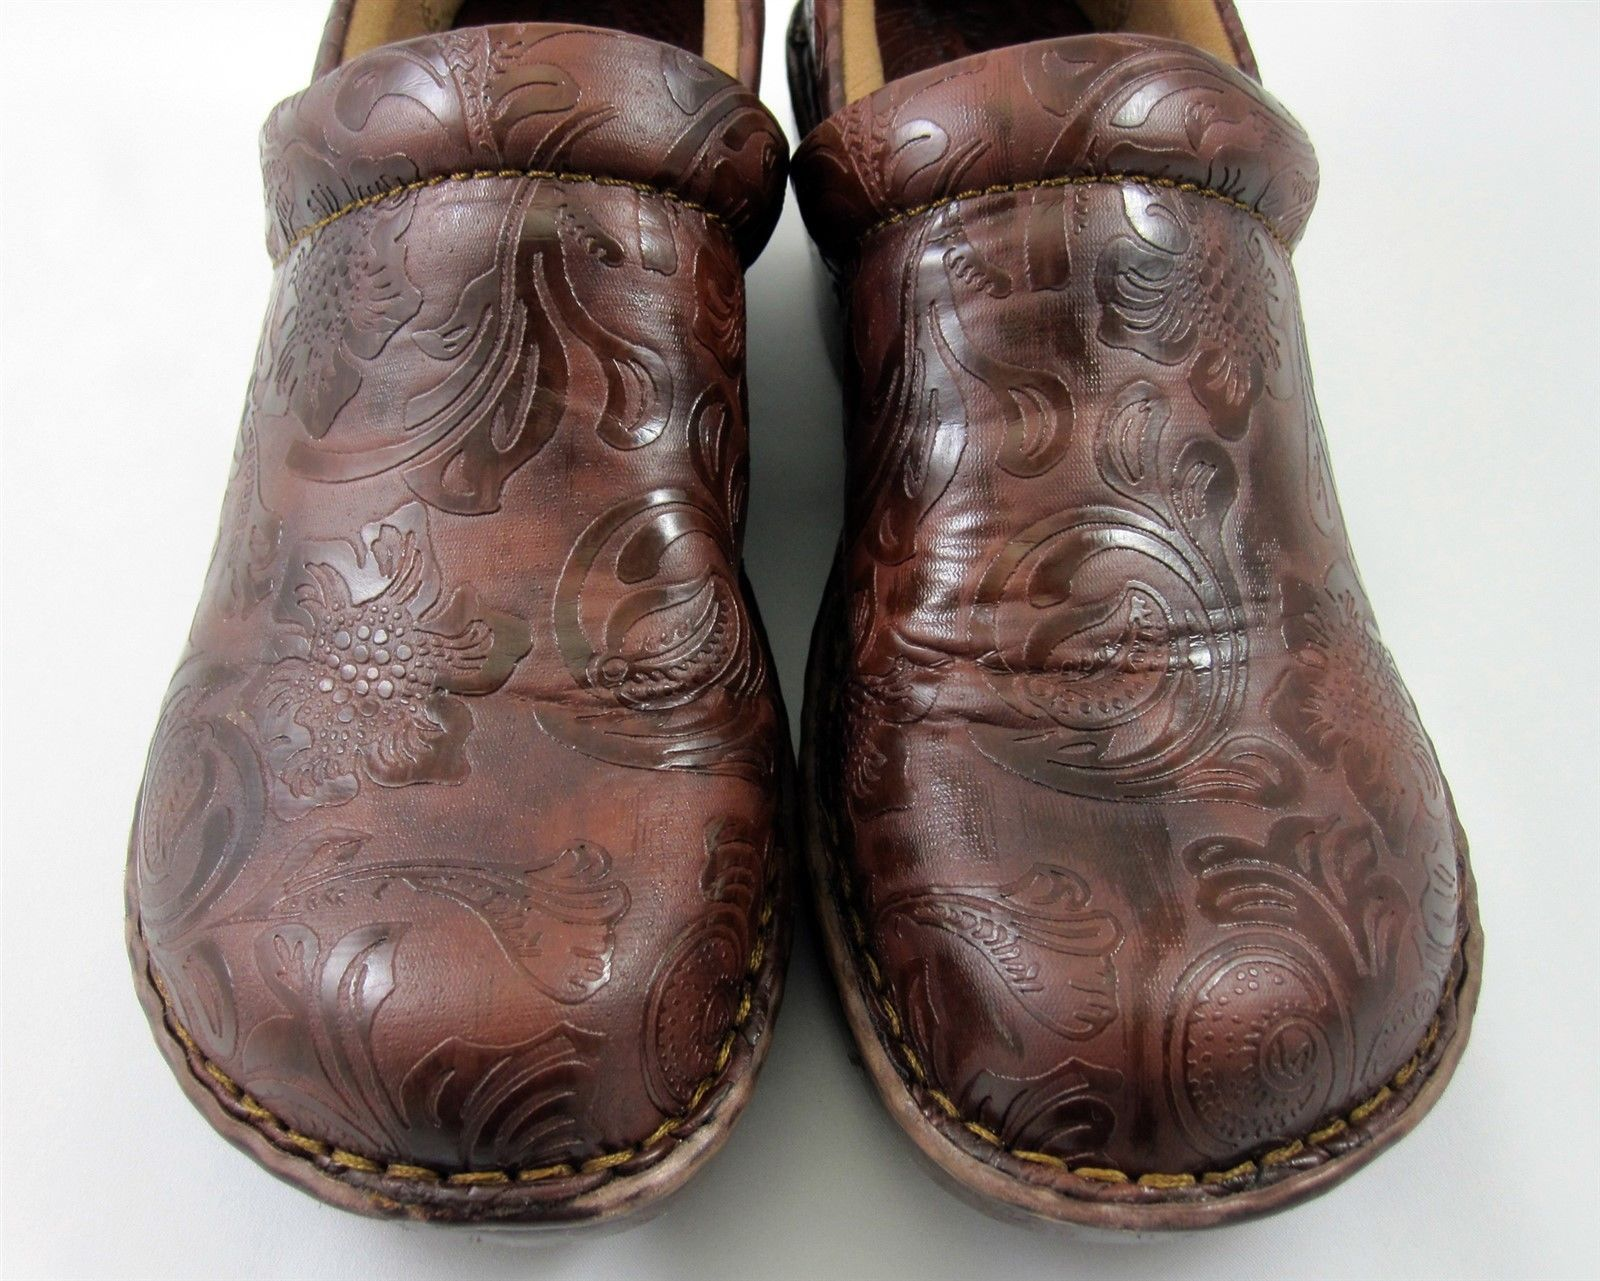 BOC Born Concepts Clogs Size 7.5 Womens Shoes Brown Embossed Floral Tooled Vegan